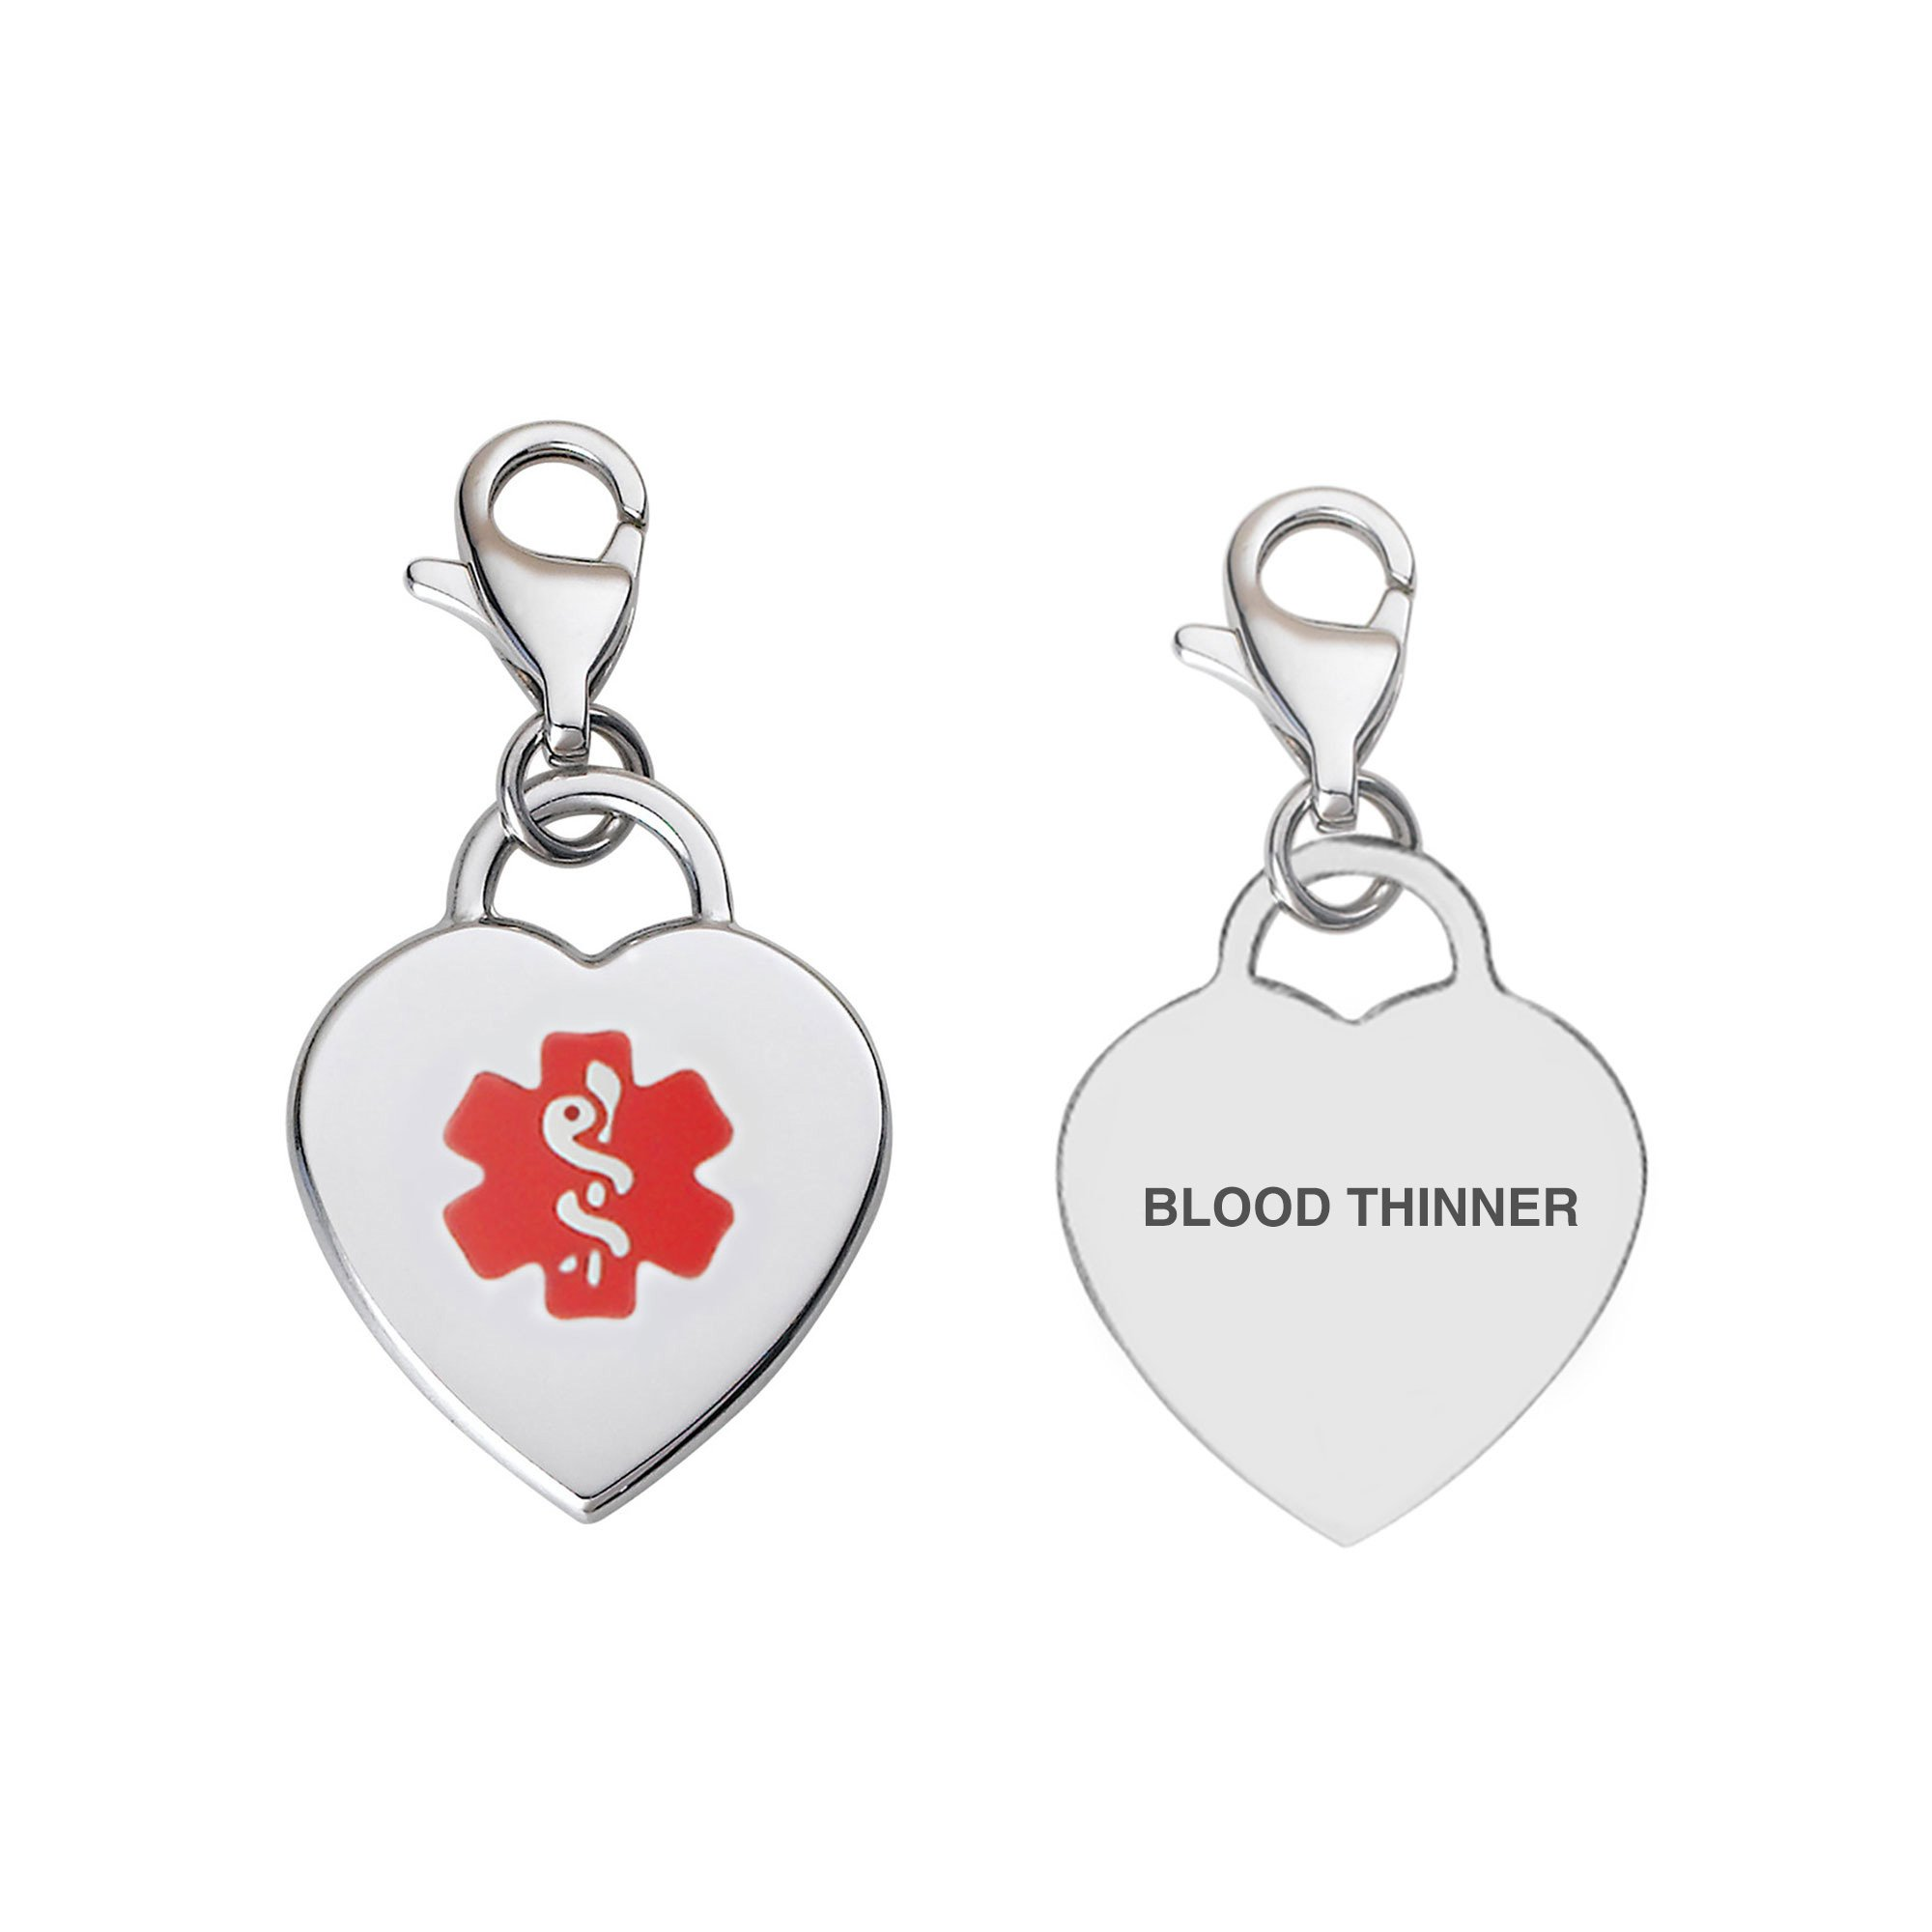 Divoti Pre-Engraved BLOOD THINNER Adorable Heart 316L Medical Alert Charm w/Lobster Clasp-Red